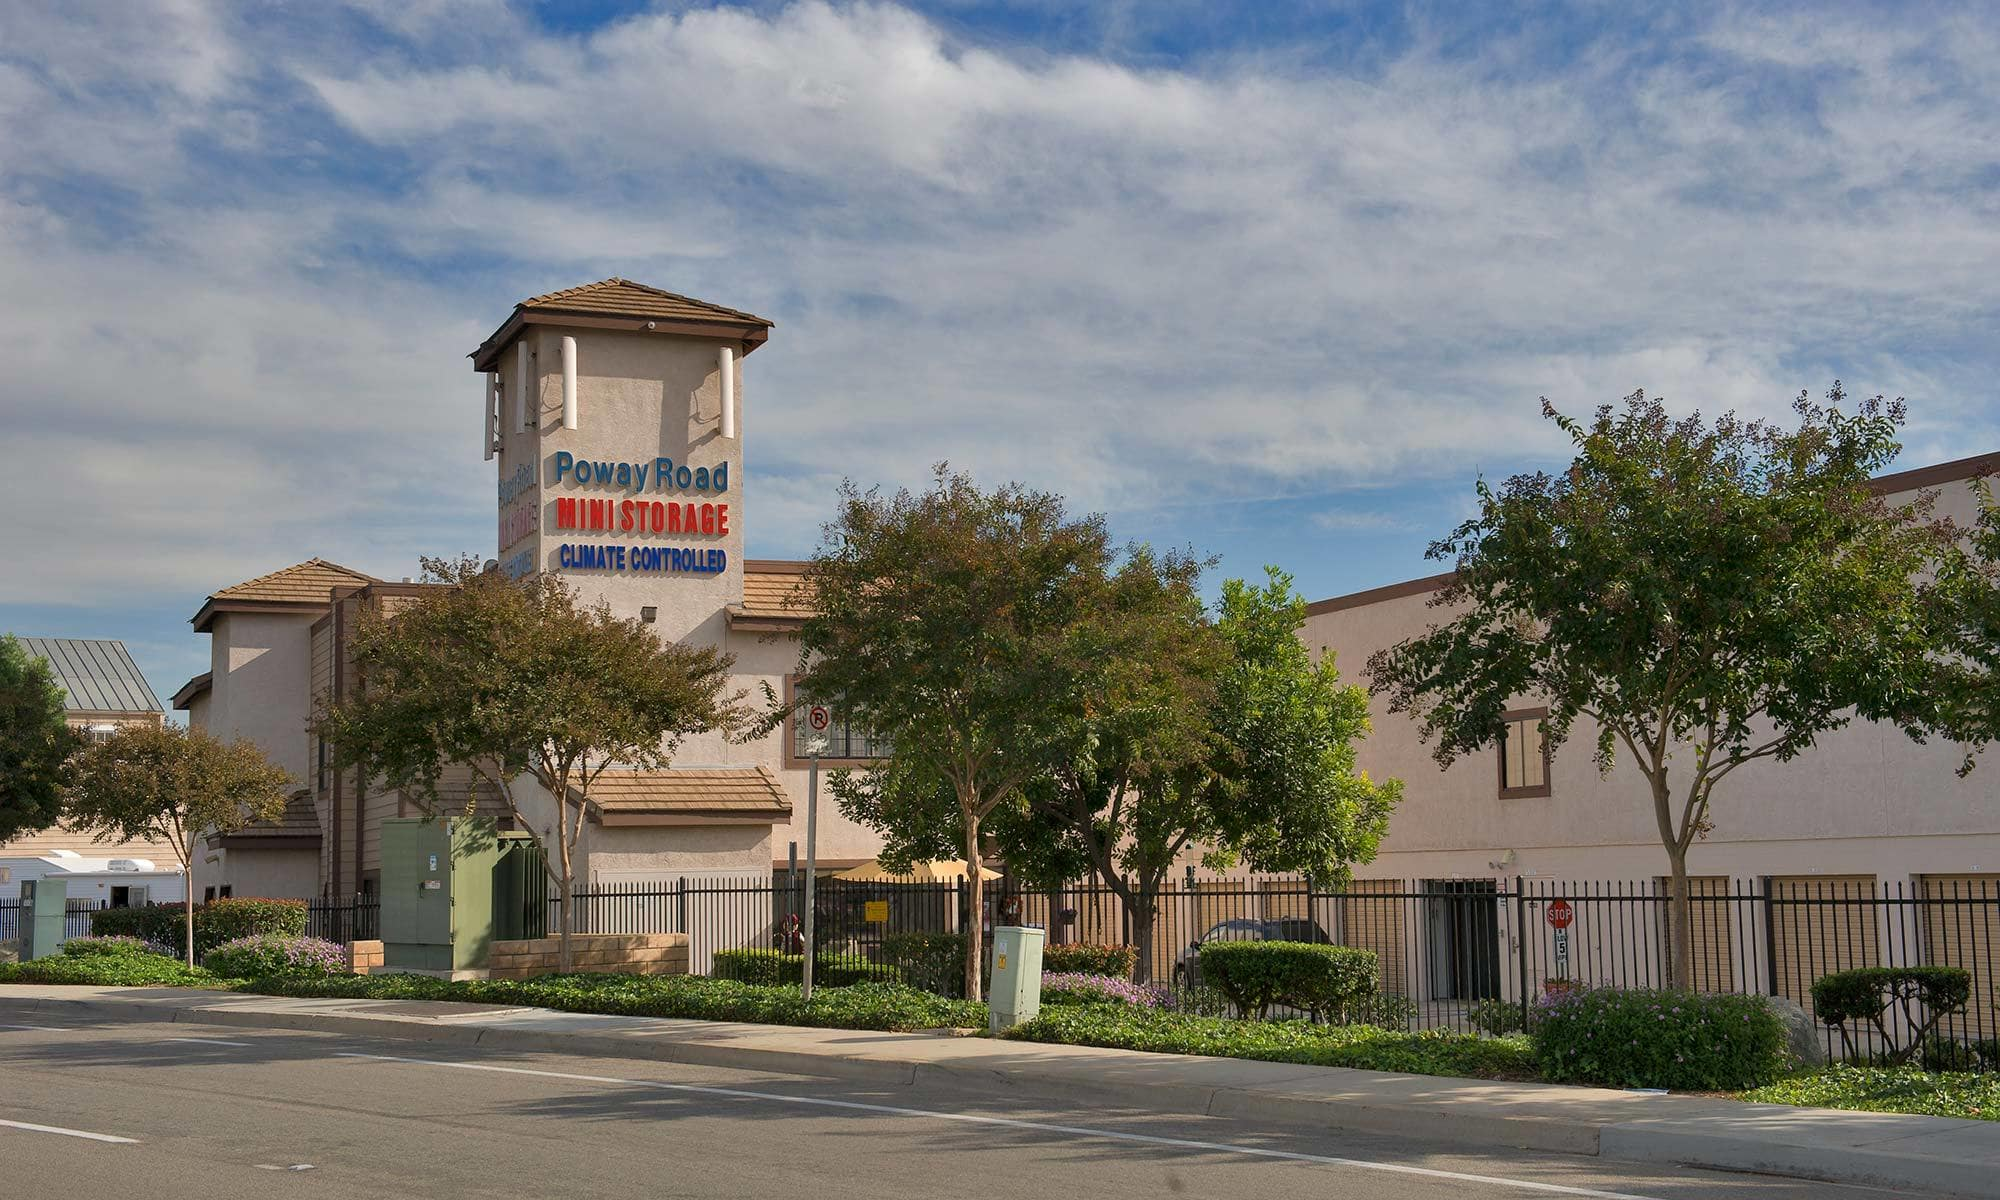 Visit https://www.sandiegoselfstorage.com for the best self storage in Poway.